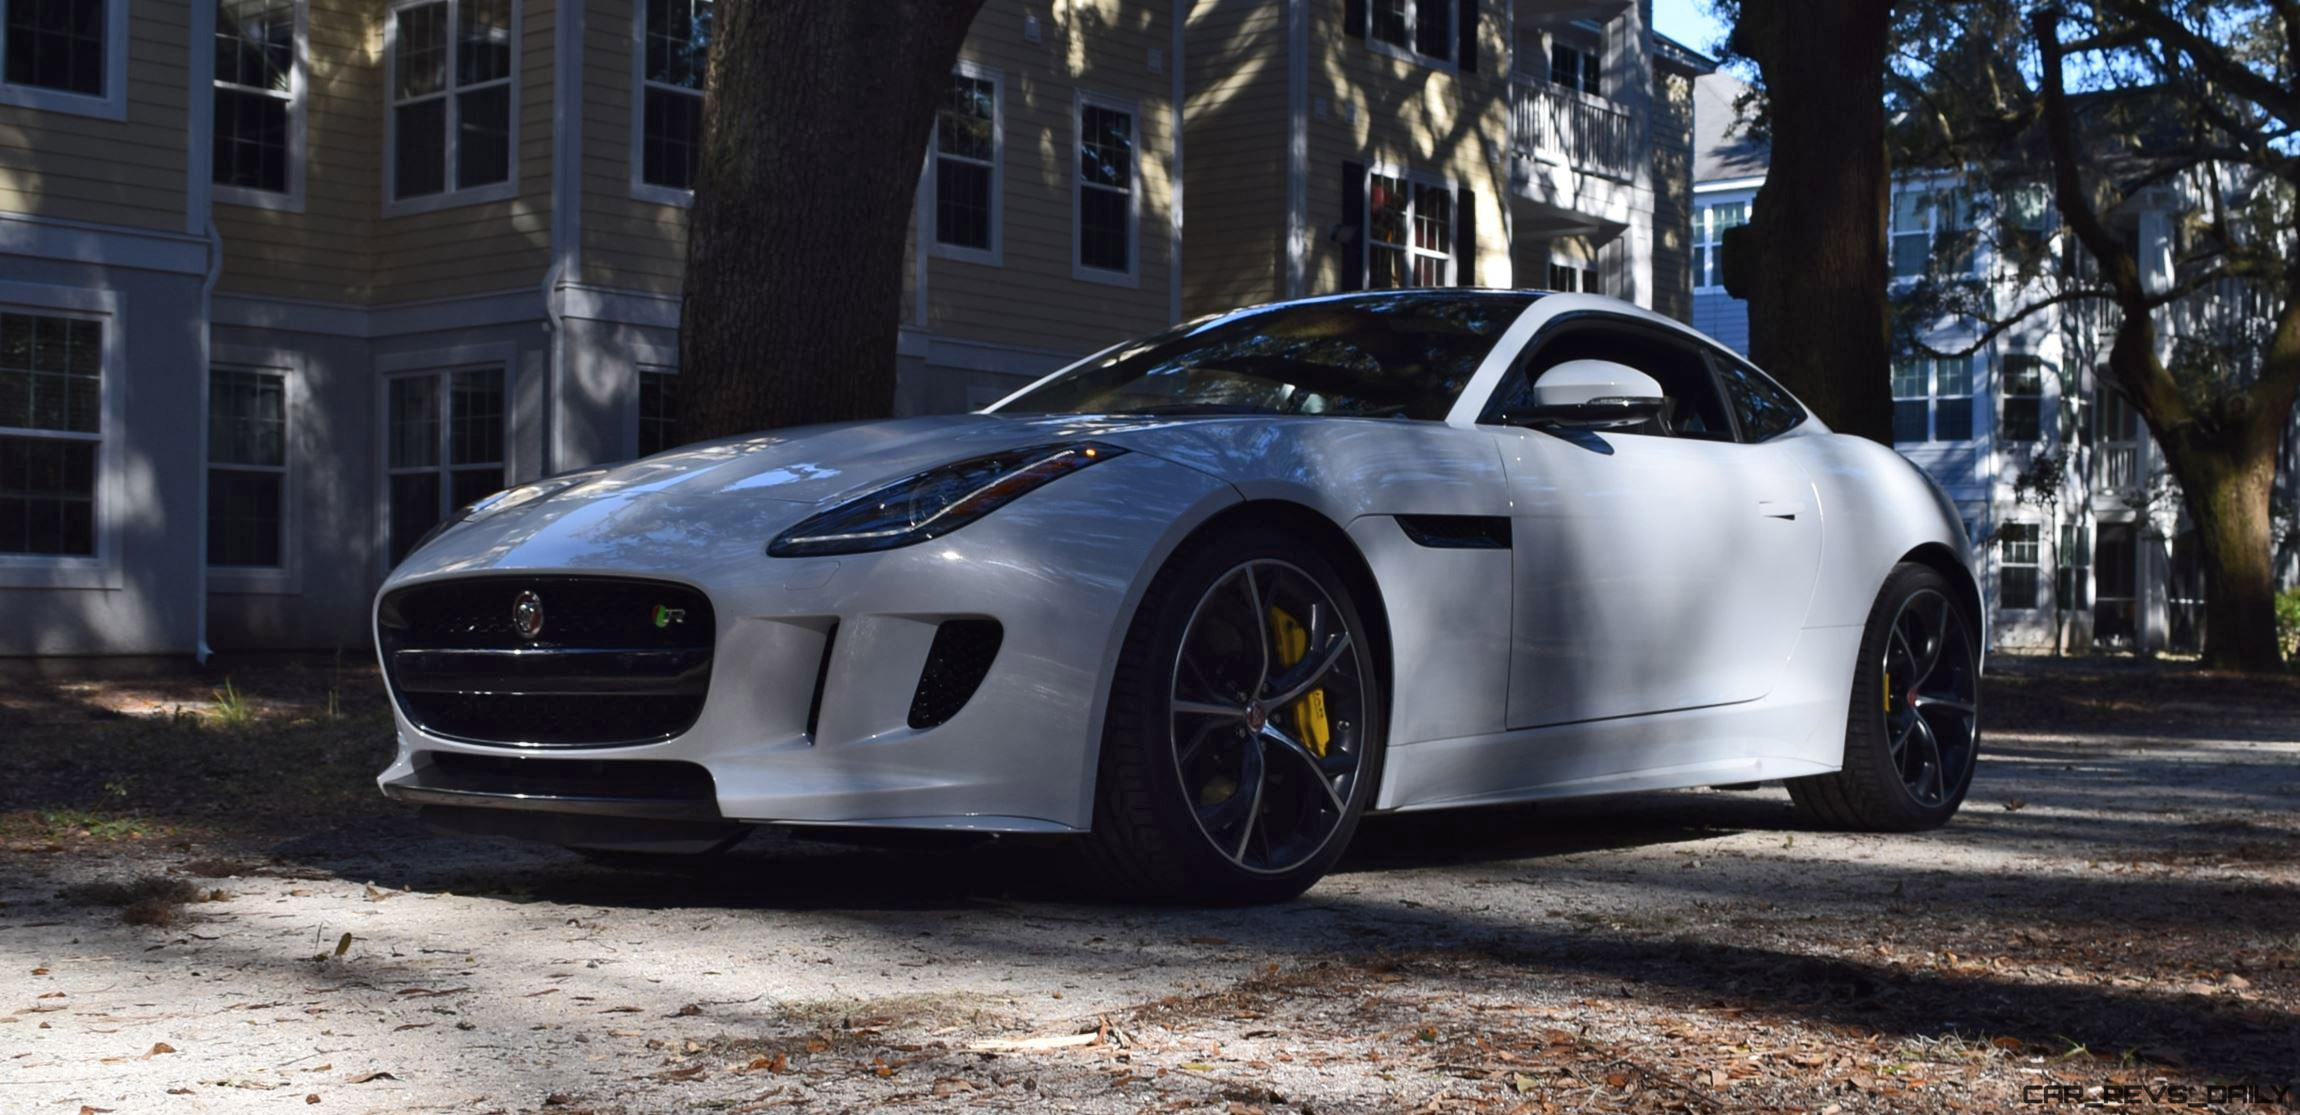 hd pre review 550hp 2016 jaguar f type r awd first 120 photos 3 hd drive videos car. Black Bedroom Furniture Sets. Home Design Ideas